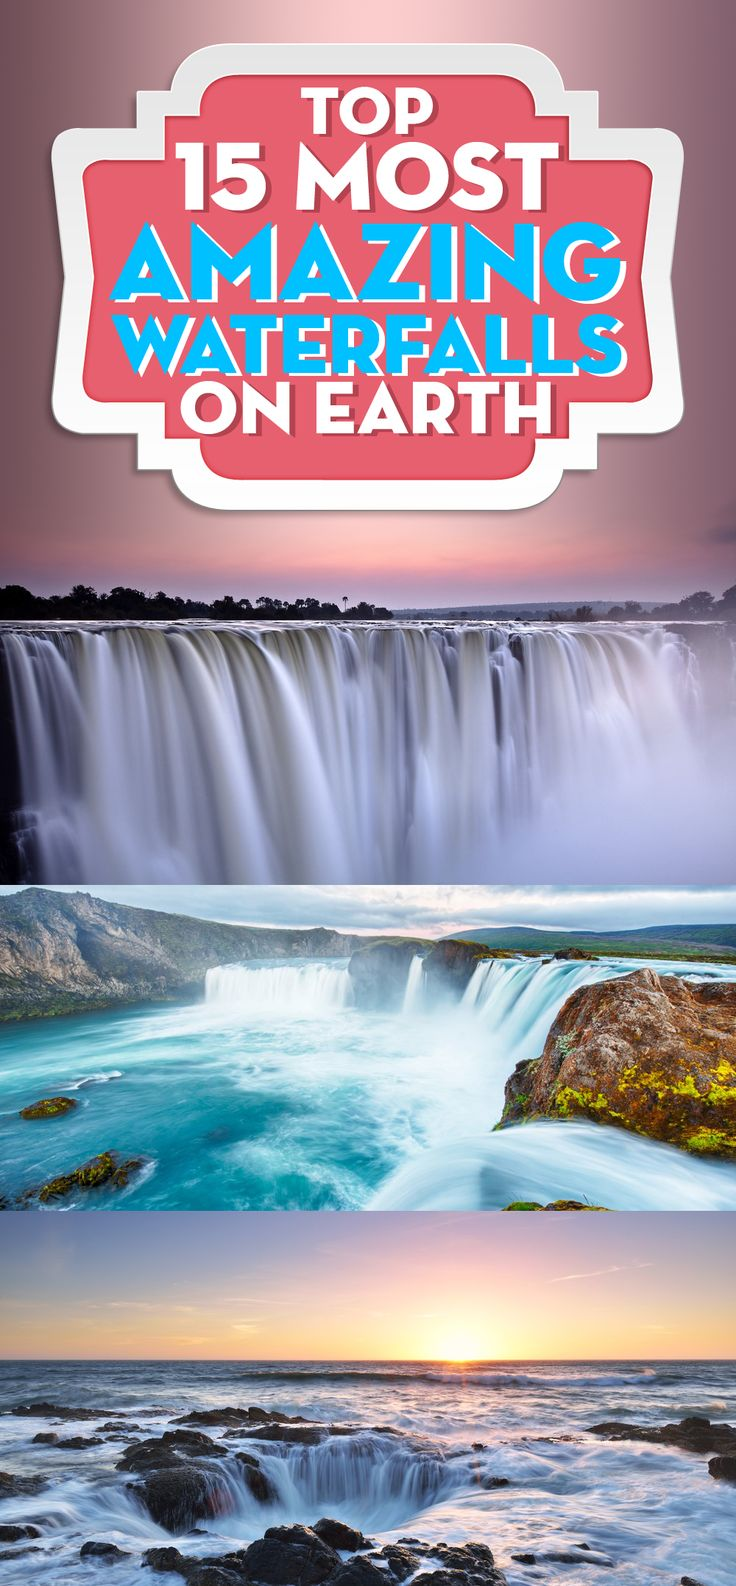 Most Amazing Waterfalls: Wow I love these waterfall photos! It's my dream to visit one of these places. I was going to publish just one as part of my travel desitnations post, but ended up making a whole post just on these waterfalls!